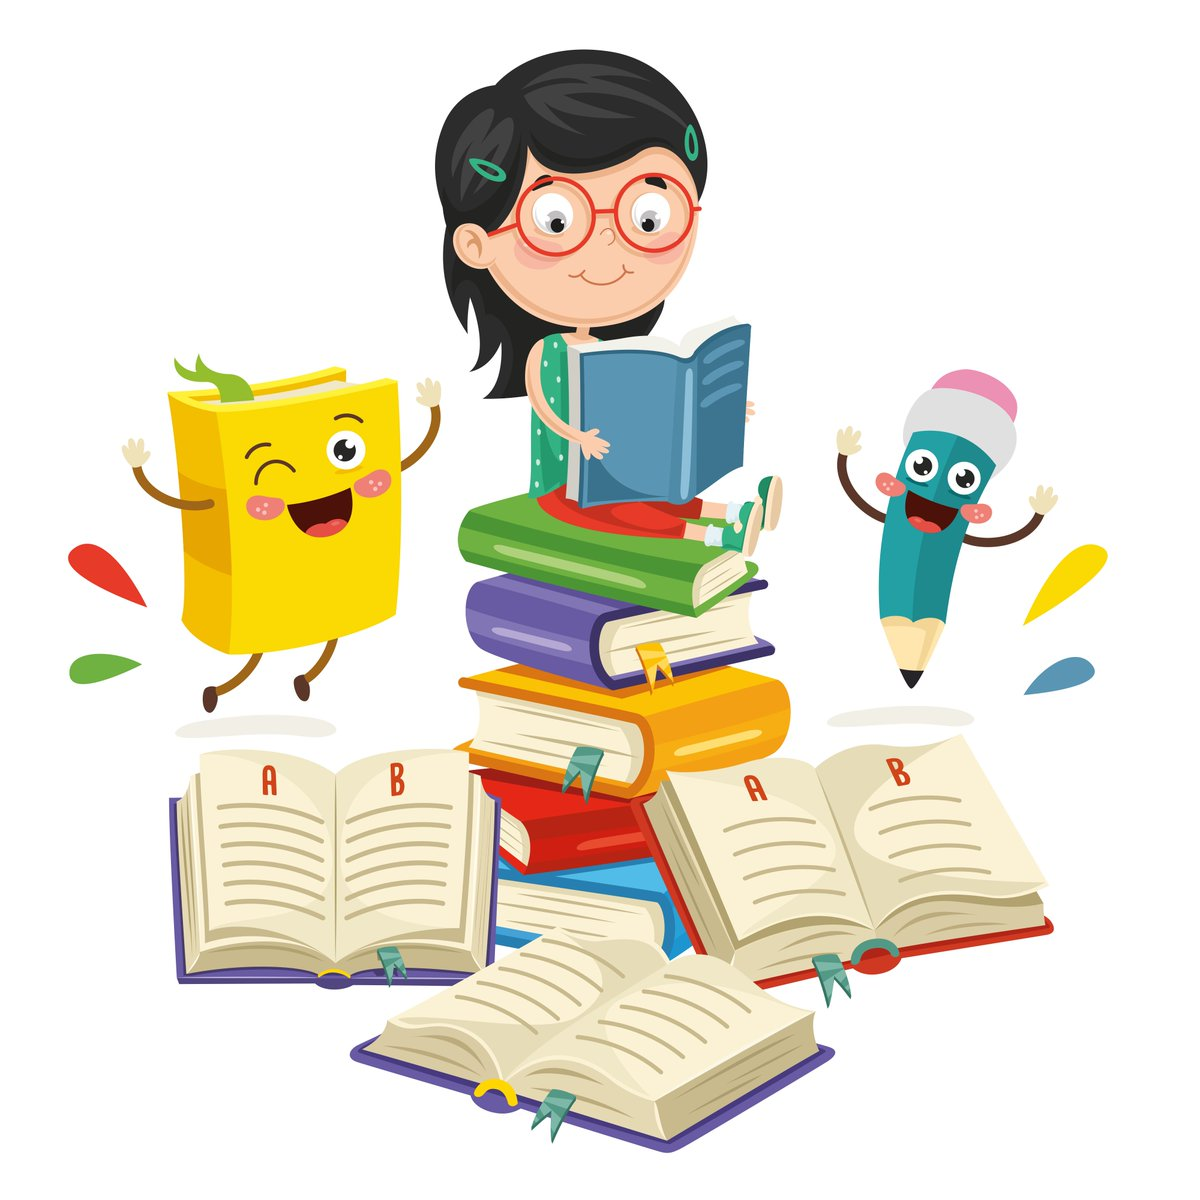 "Red Apple Reading on Twitter: ""Reading and writing go hand in hand! 📚✍️  Activities that promote both reading and writing: https://t.co/RzJ8Nz0zau # reading #writing #earlyyears #literacy #elementary… https://t.co/0YndFGAfju"""